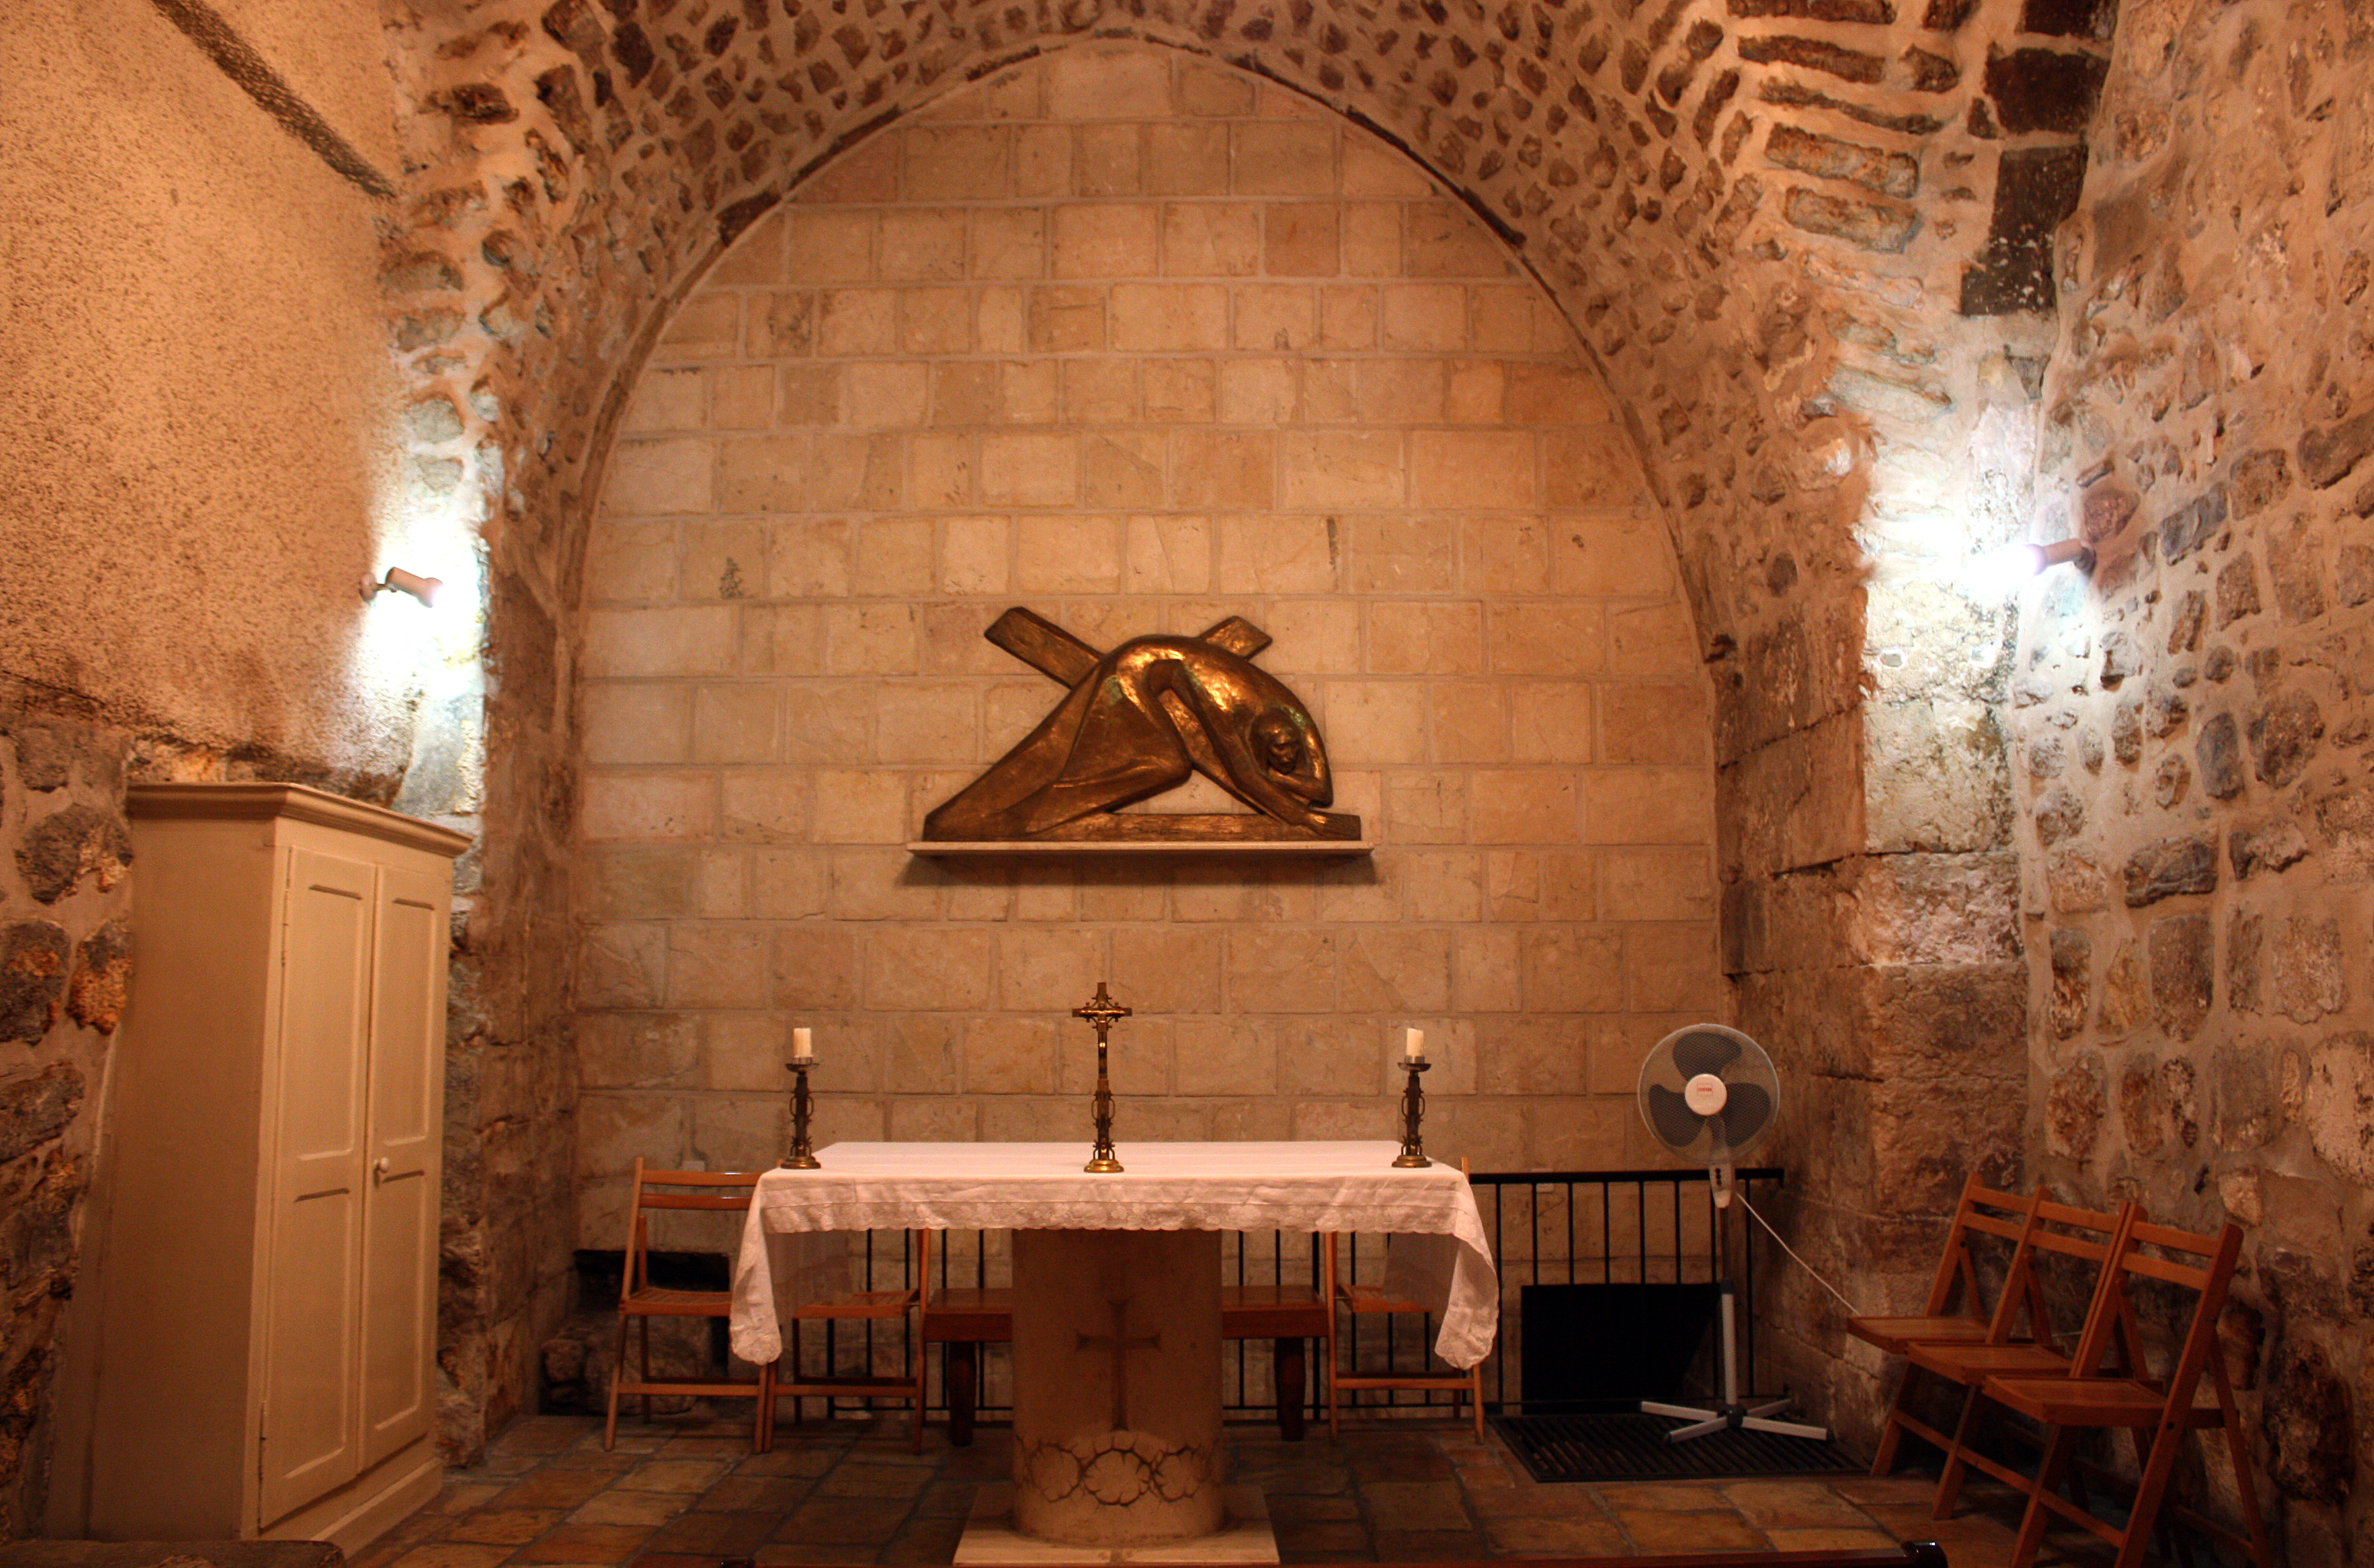 https://upload.wikimedia.org/wikipedia/commons/6/6f/Chapel_in_7th_Station_%28Via_Dolorosa%29.JPG